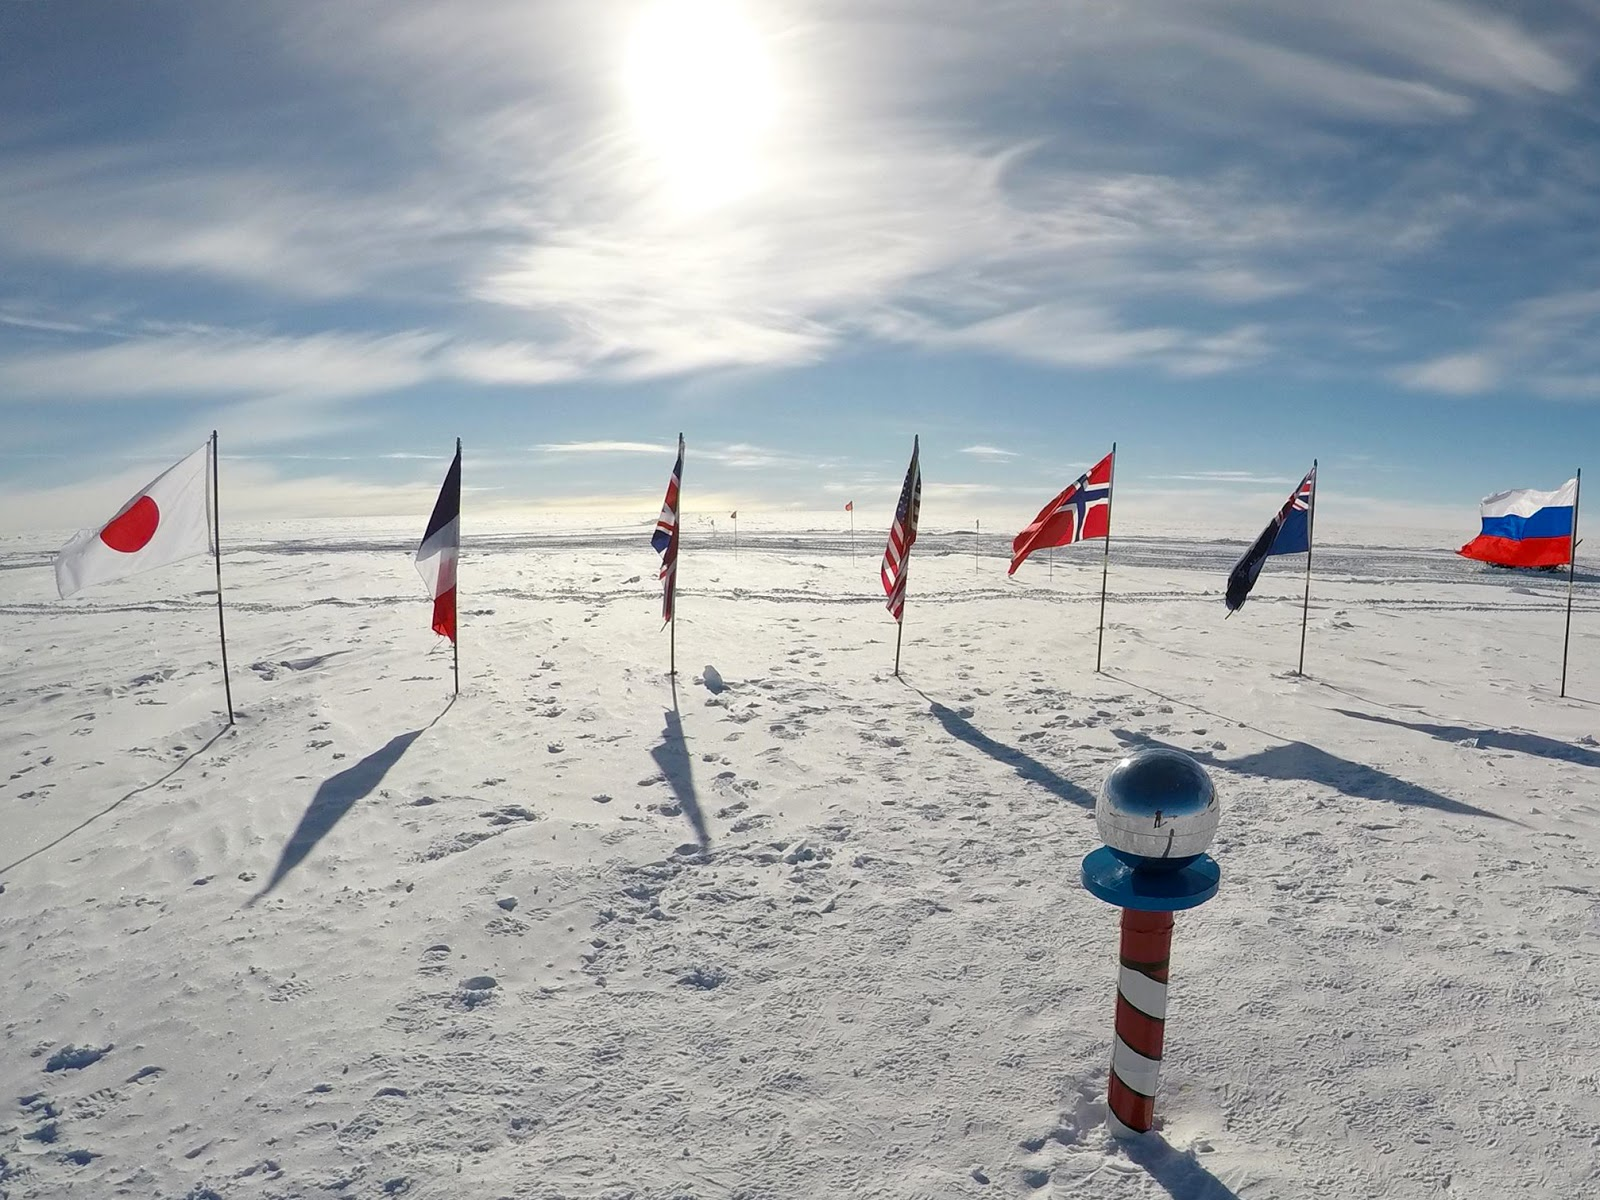 The South Pole marker surrounded by the flags of different nations